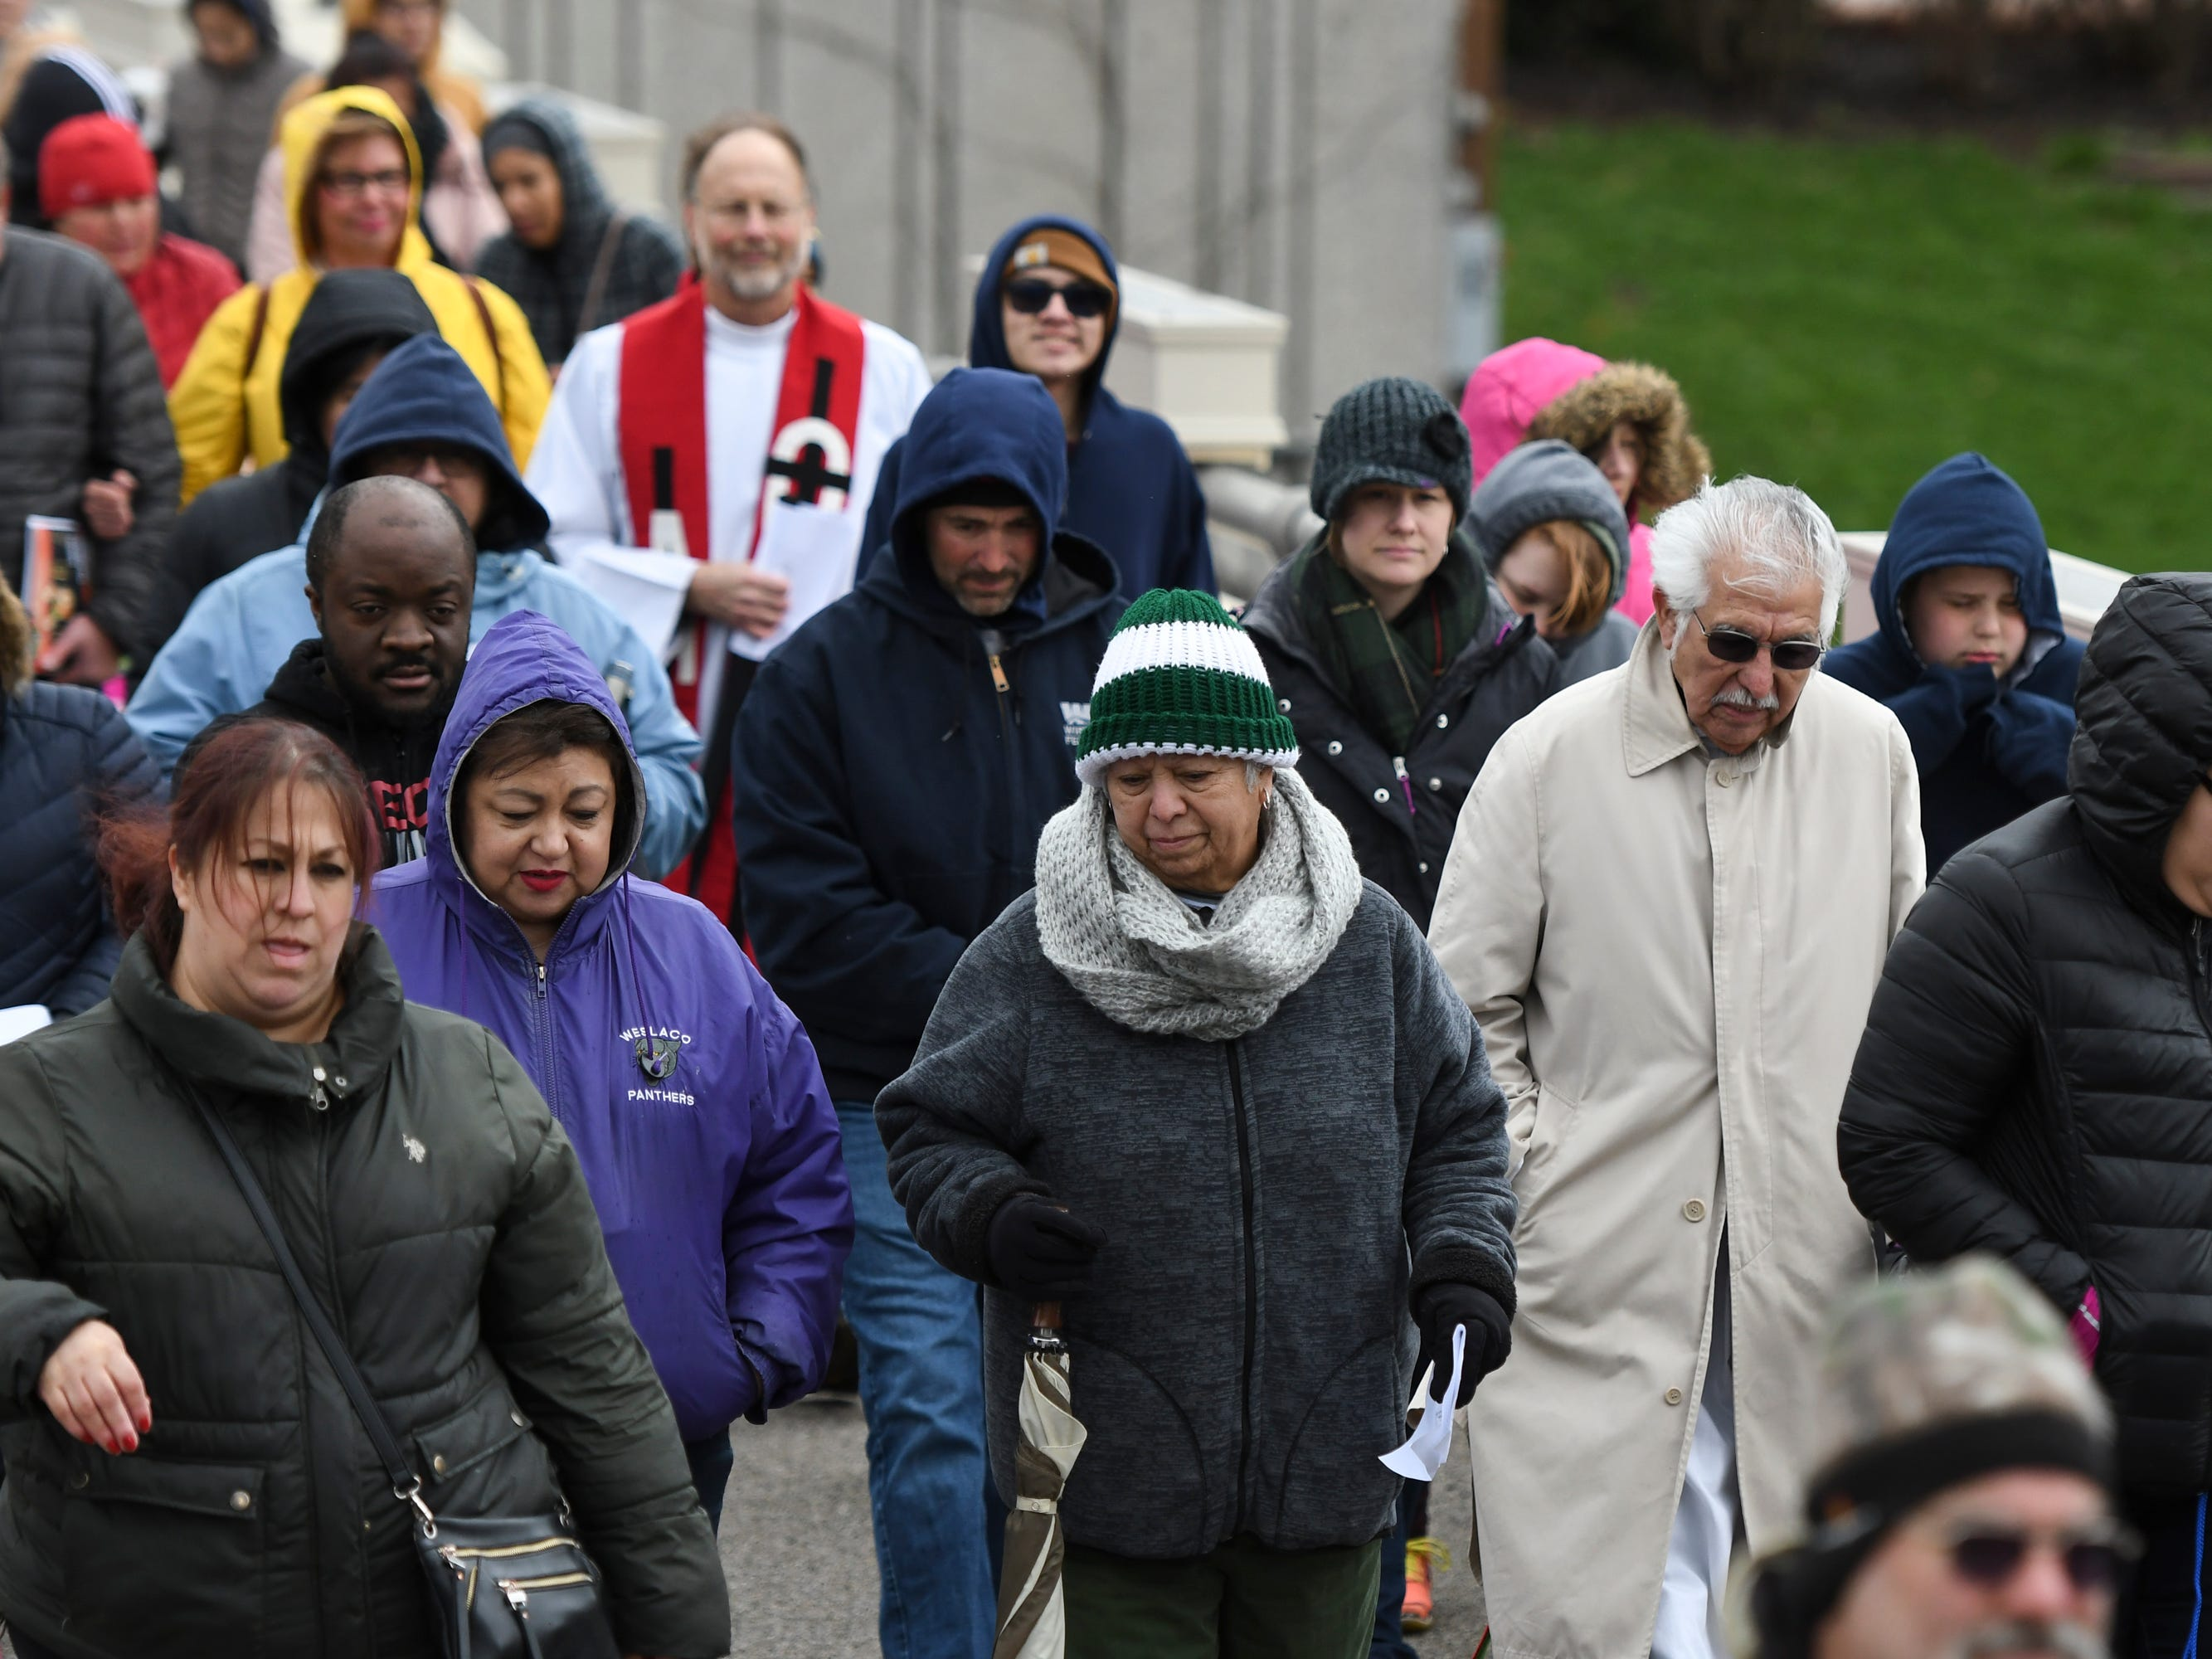 """A small crowd follows David Ponce who portrayed as Jesus as he carries a cross through downtown Lansing as part of Cristo Rey's """"Stations of the Cross,""""  Friday, April 19, 2019.  The service started on the steps of the Capitol with the reenactment of Jesus being condemned to death and concluded at the Cristo Rey Community Center with the crucifixion followed by a Good Friday service."""